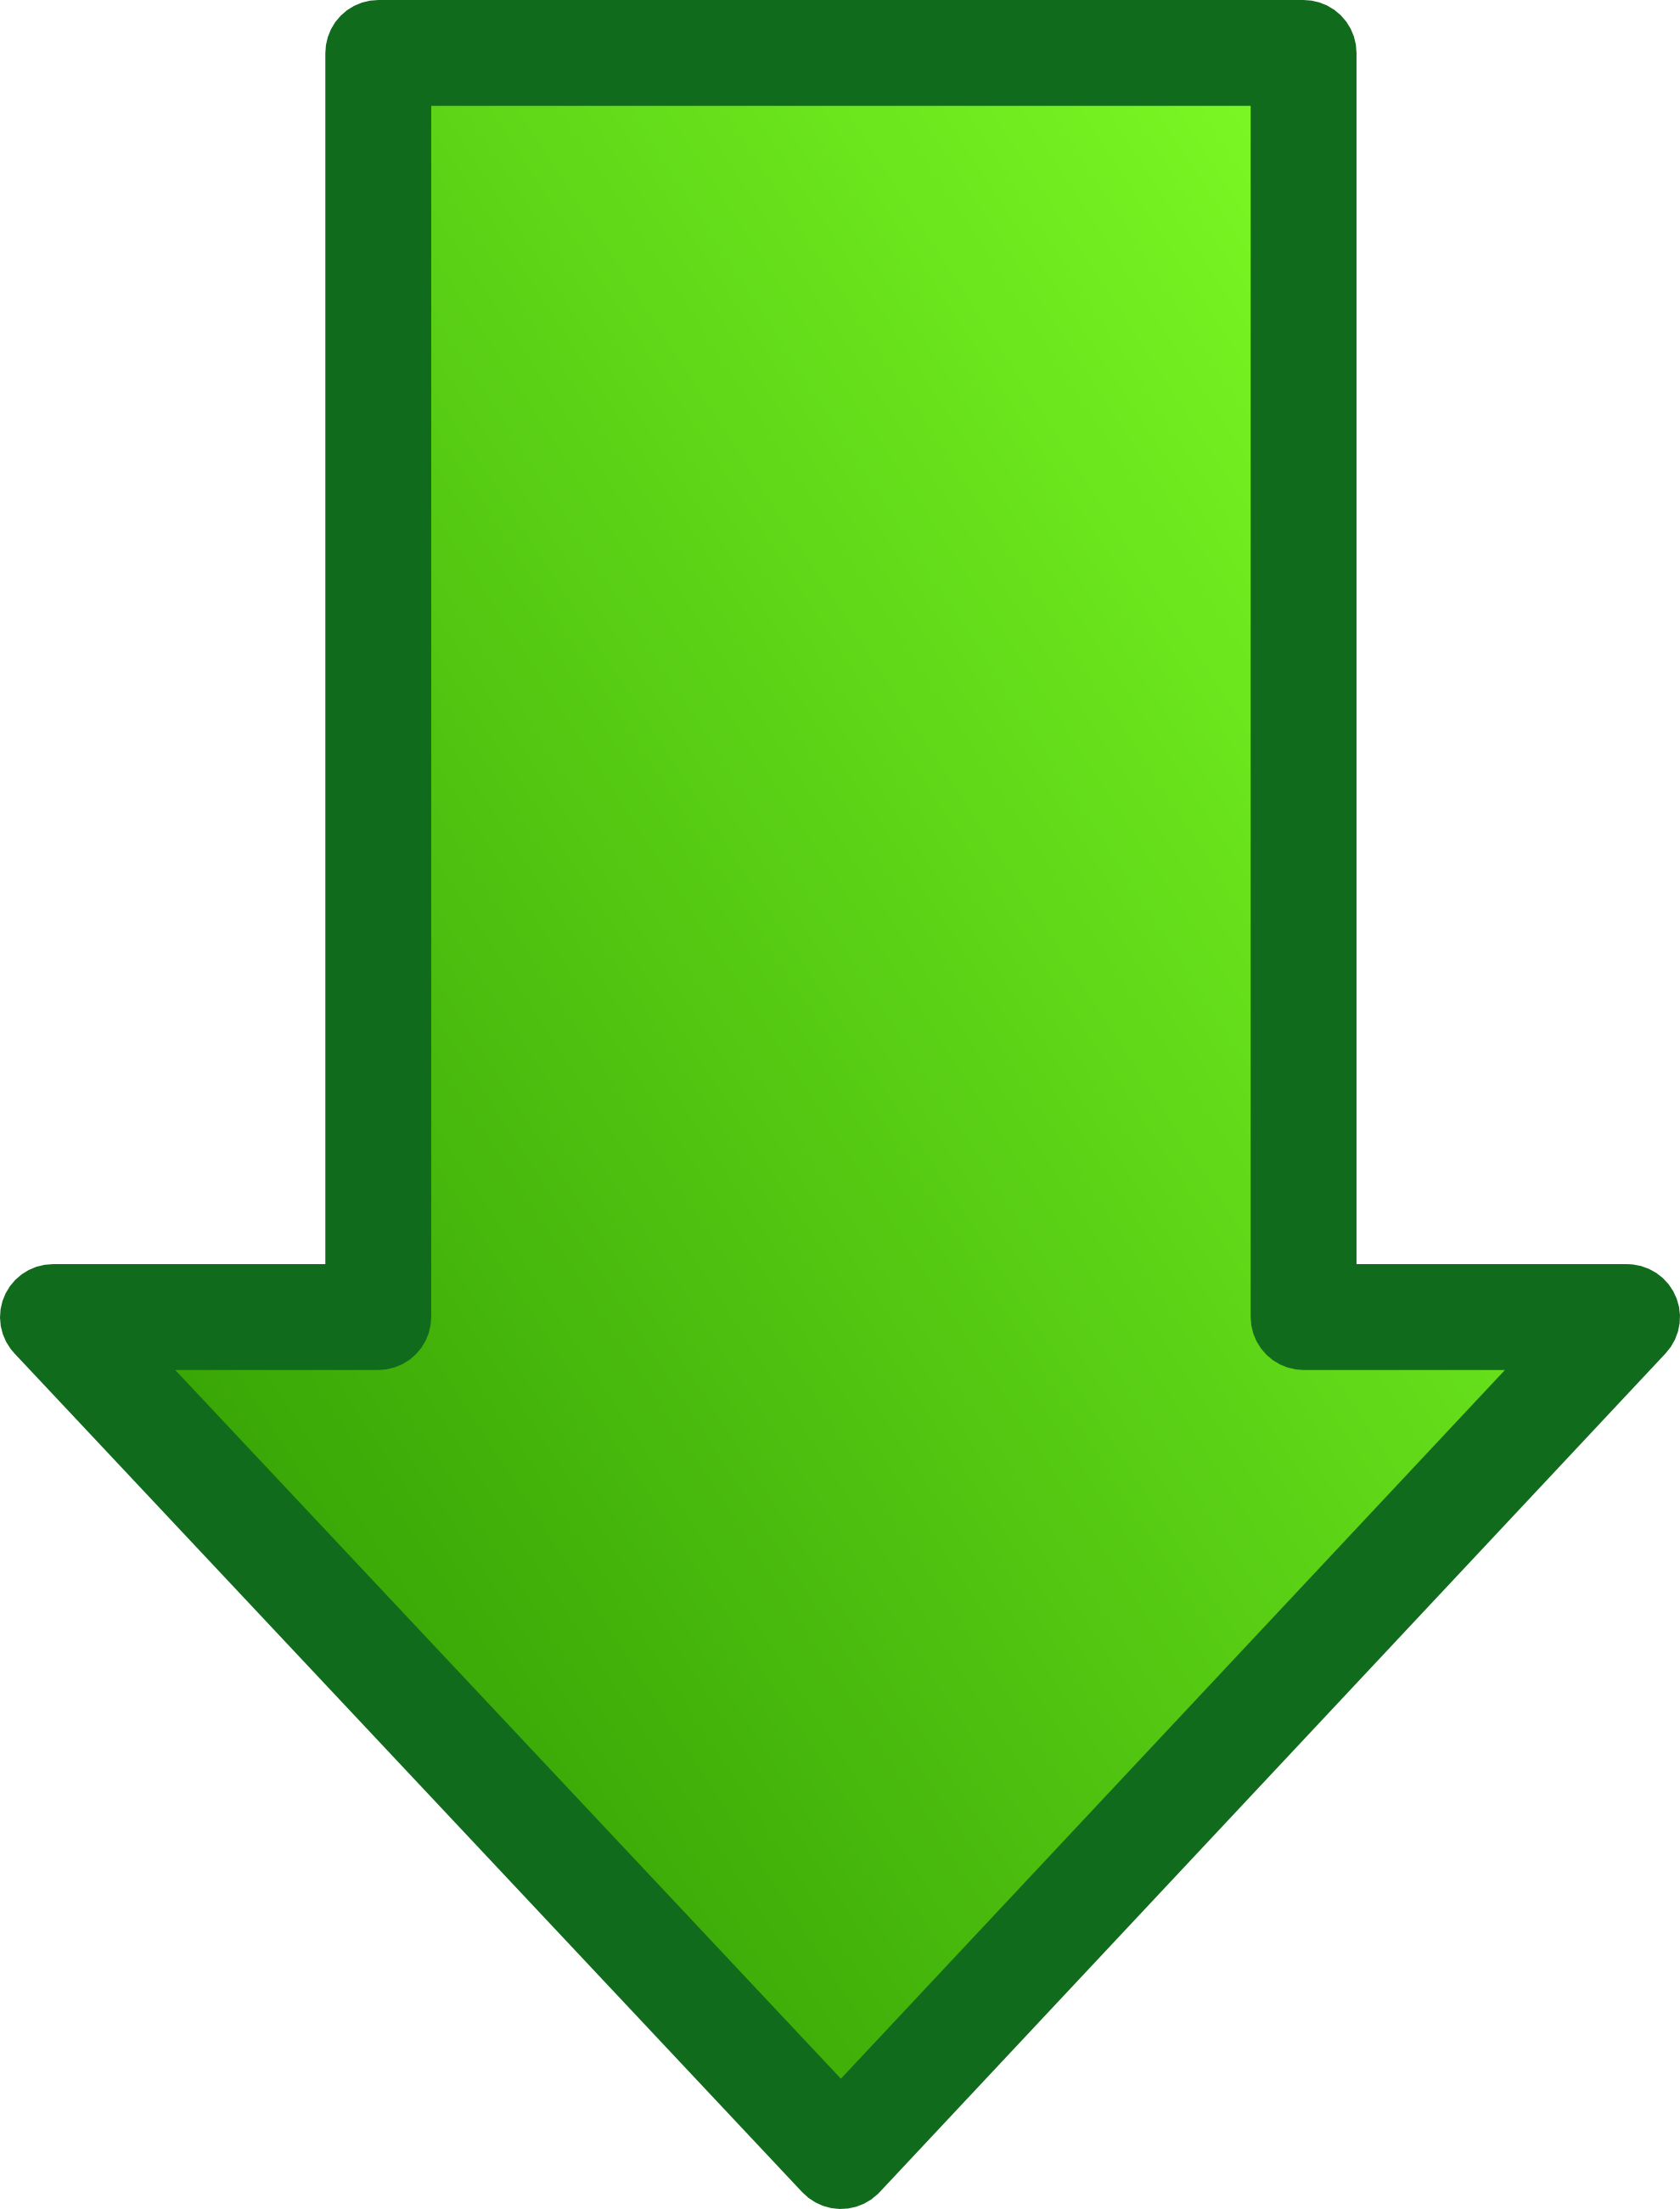 Arrow Transparent PNG Pictures - Free Icons and PNG ...